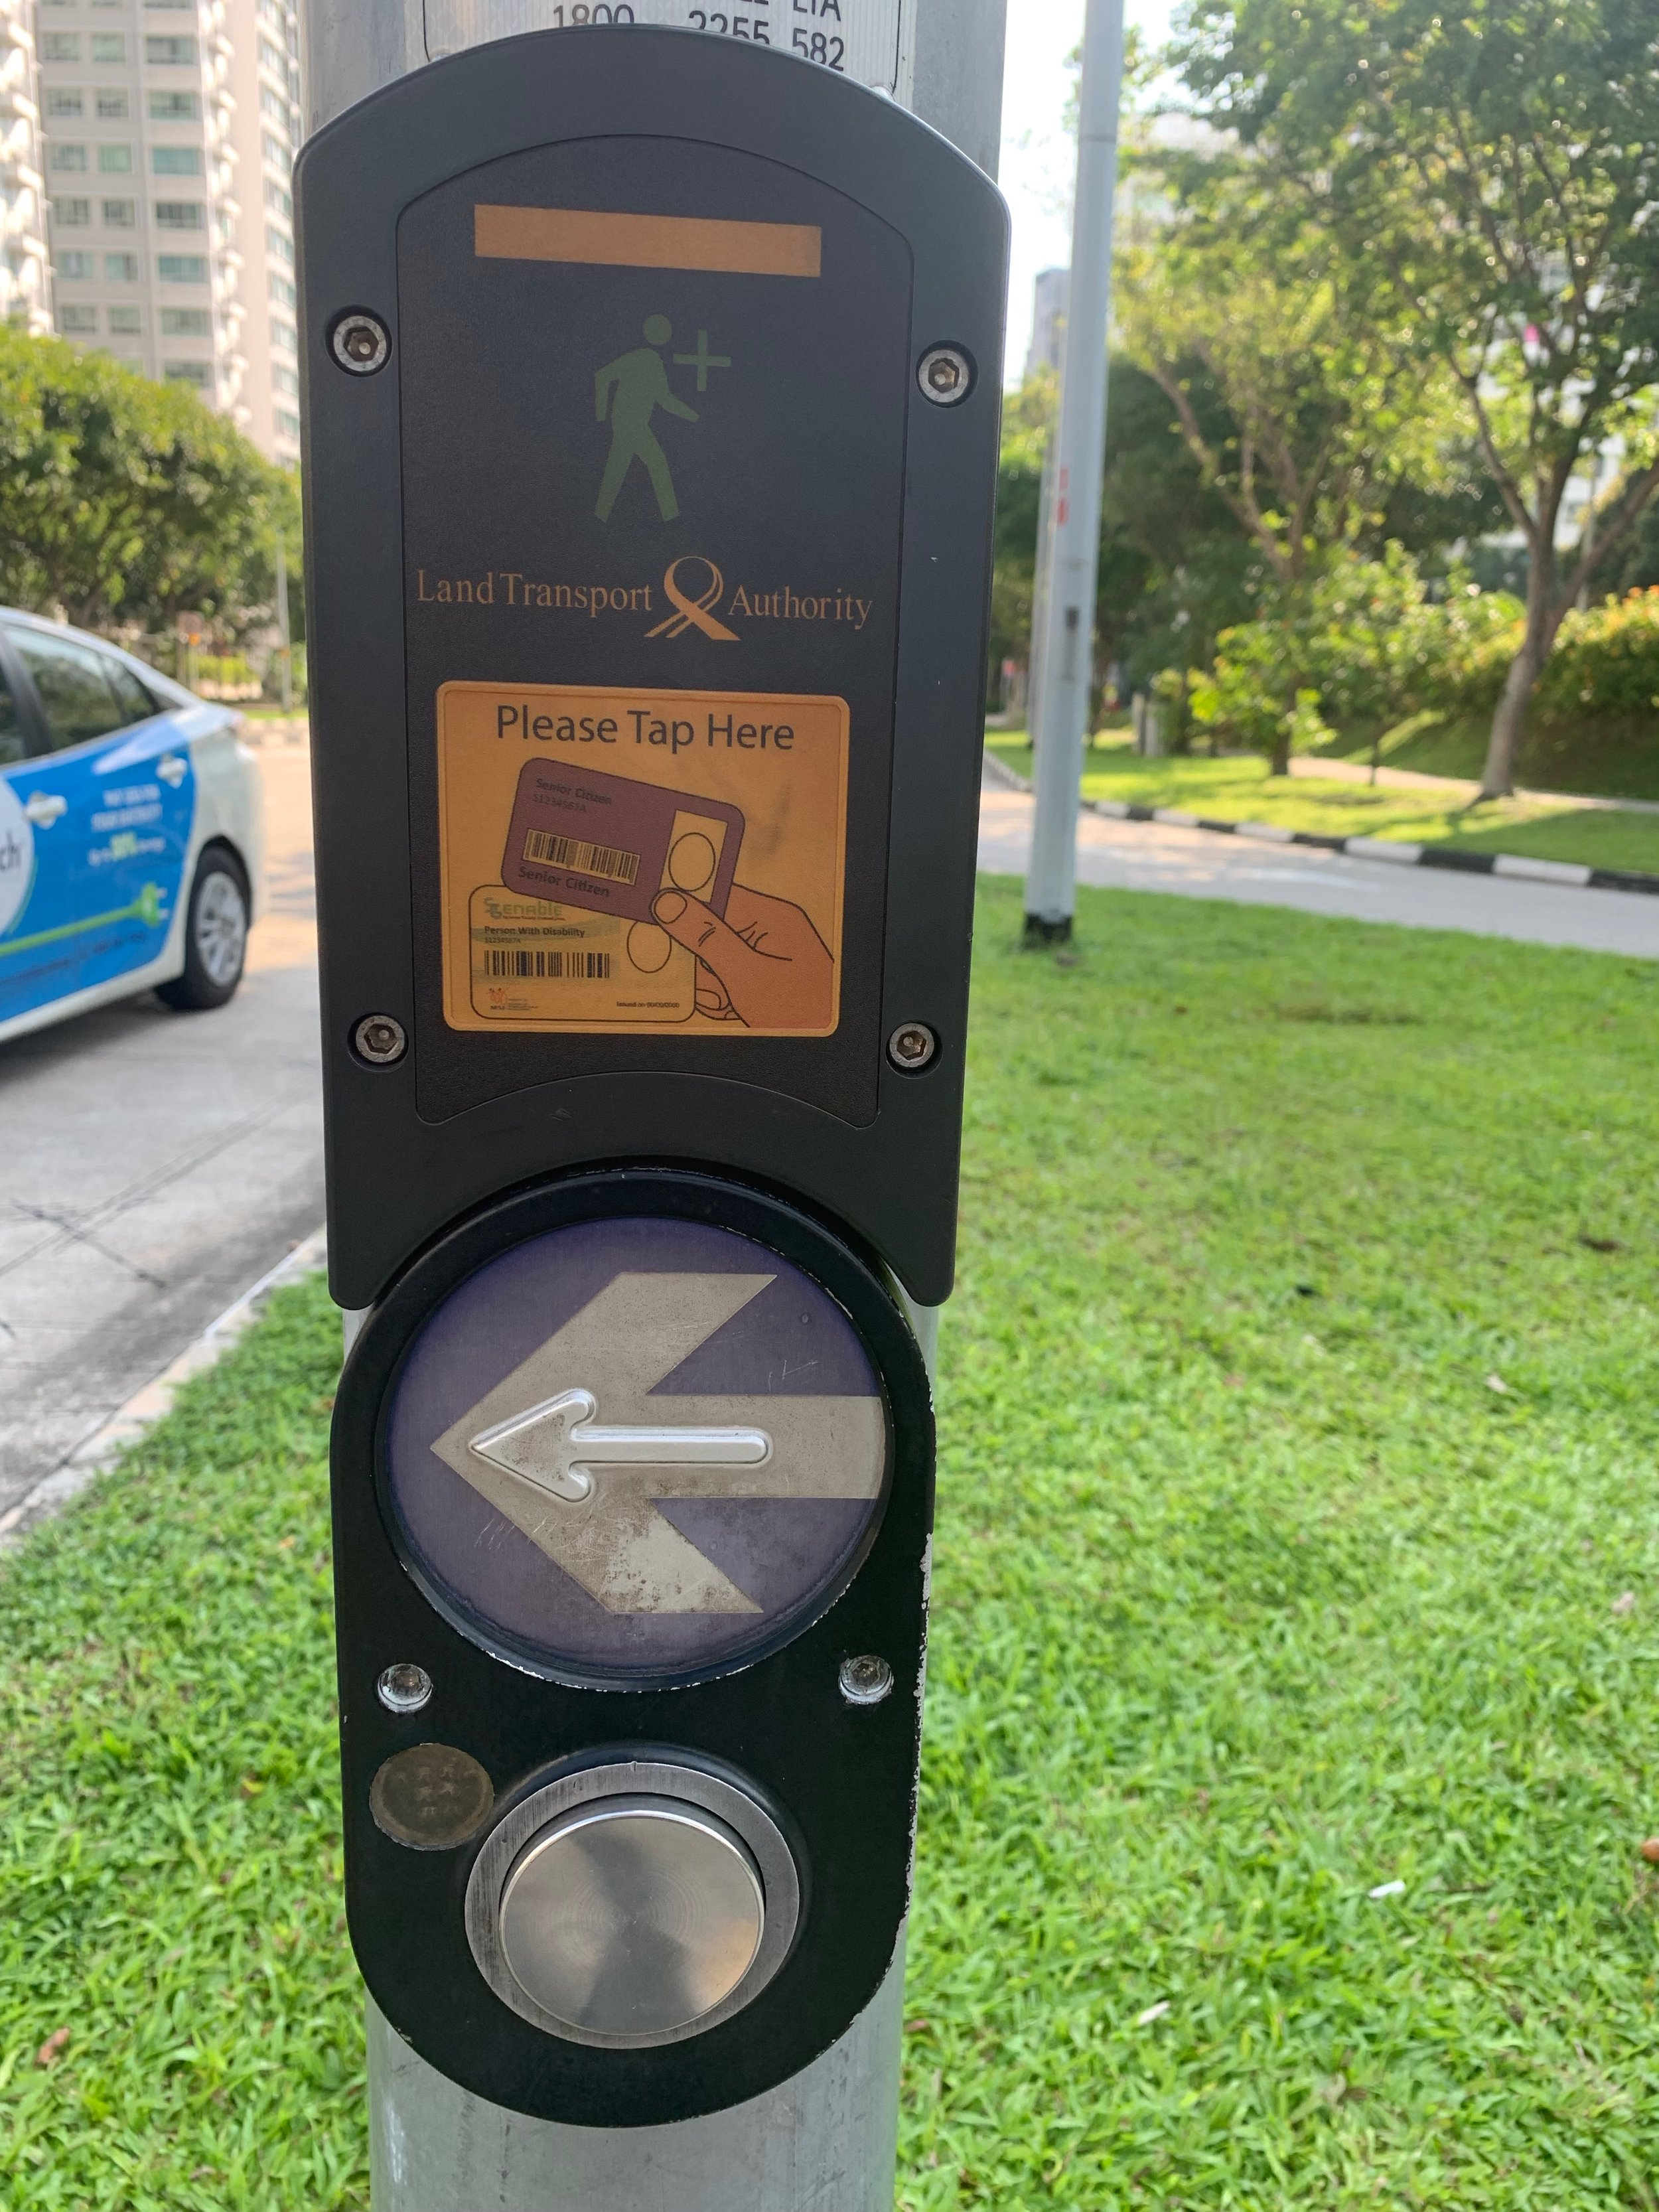 Pedestrians are taken care of at crosswalks. If you need more time, seniors and those with special needs are given a special transport card that allows them to tap the sensor which will add time to the light.